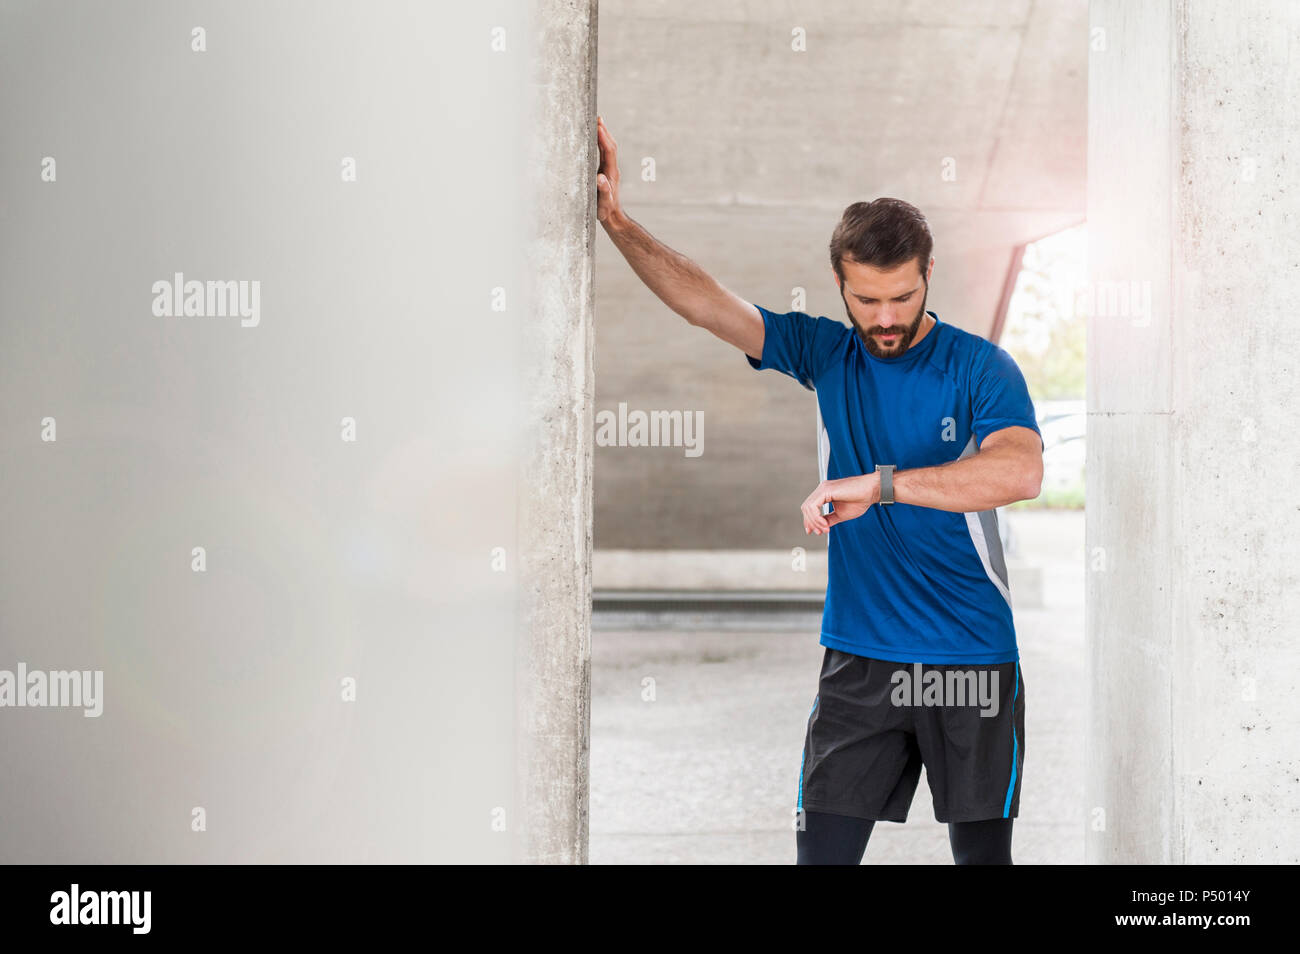 Man having a break from running checking the time - Stock Image